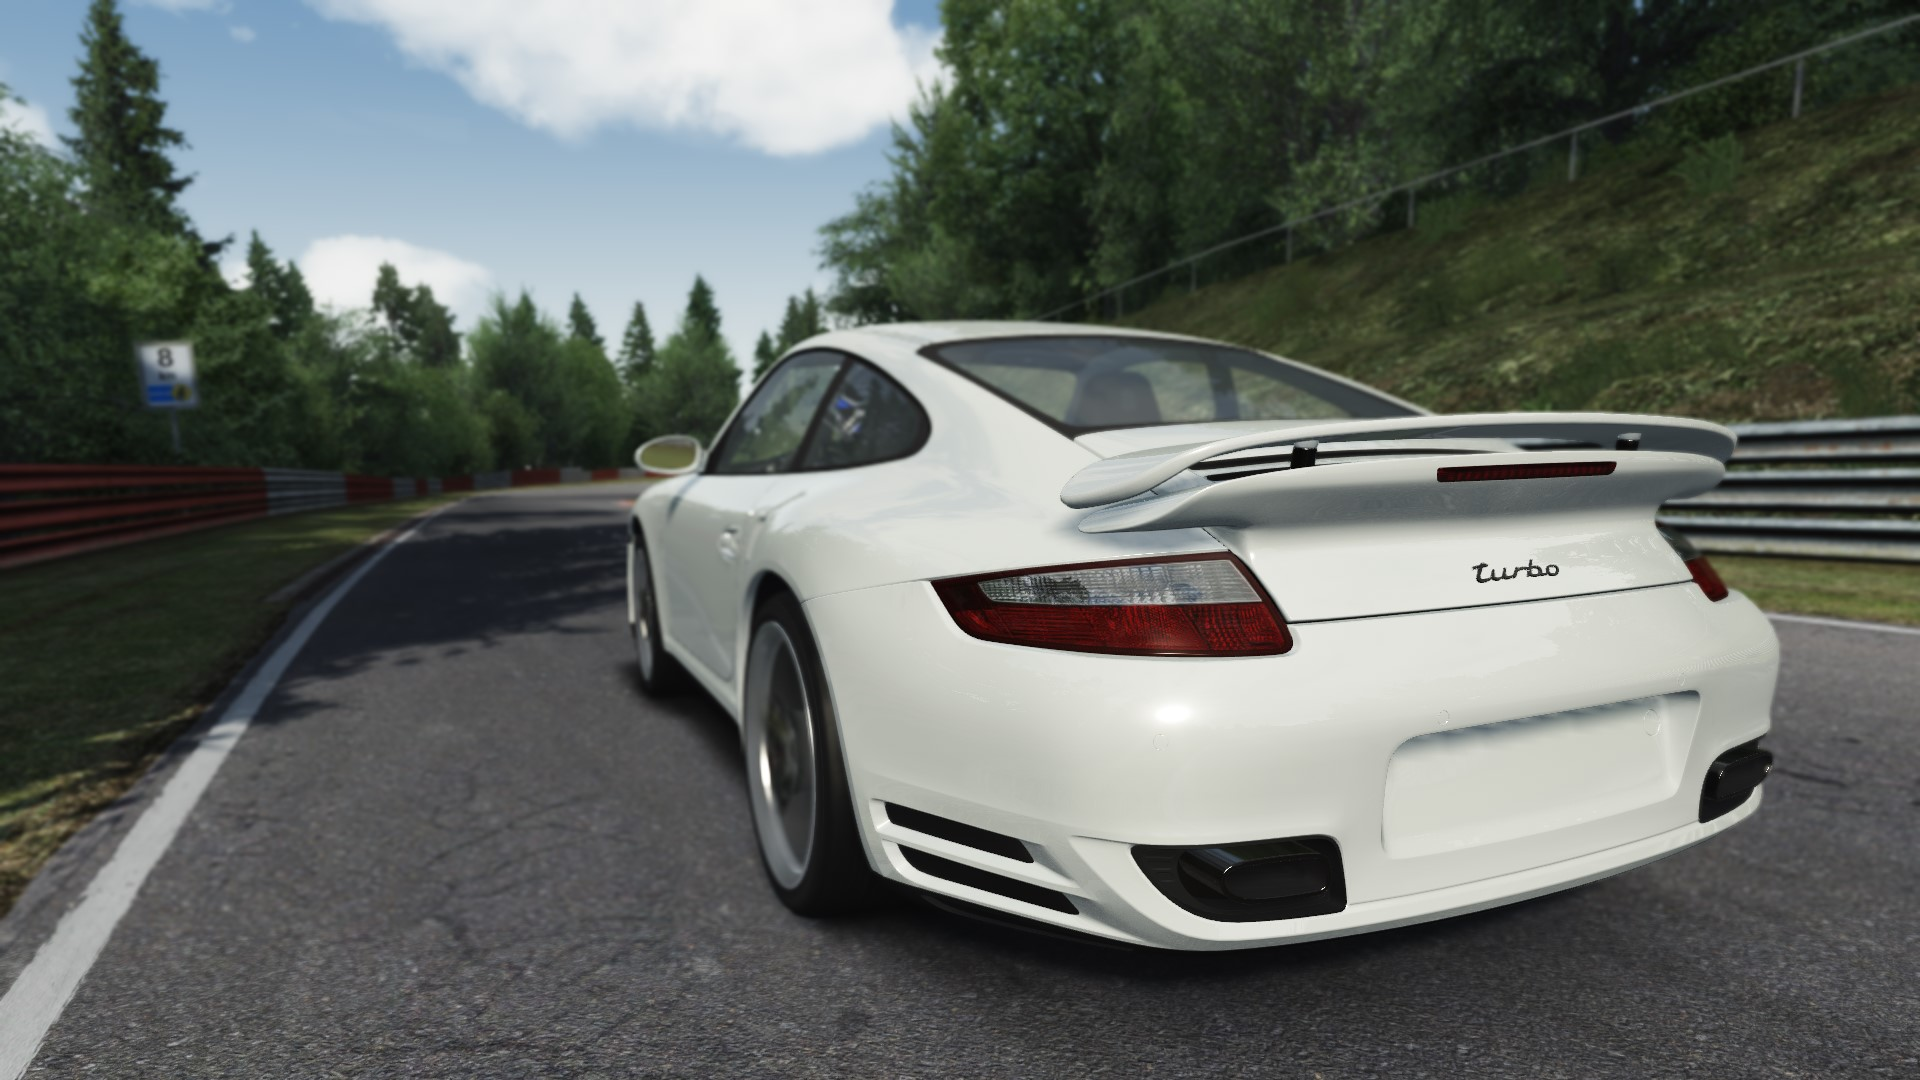 Screenshot_porsche_997turbo_ks_nordschleife_20-10-115-19-51-11.jpg